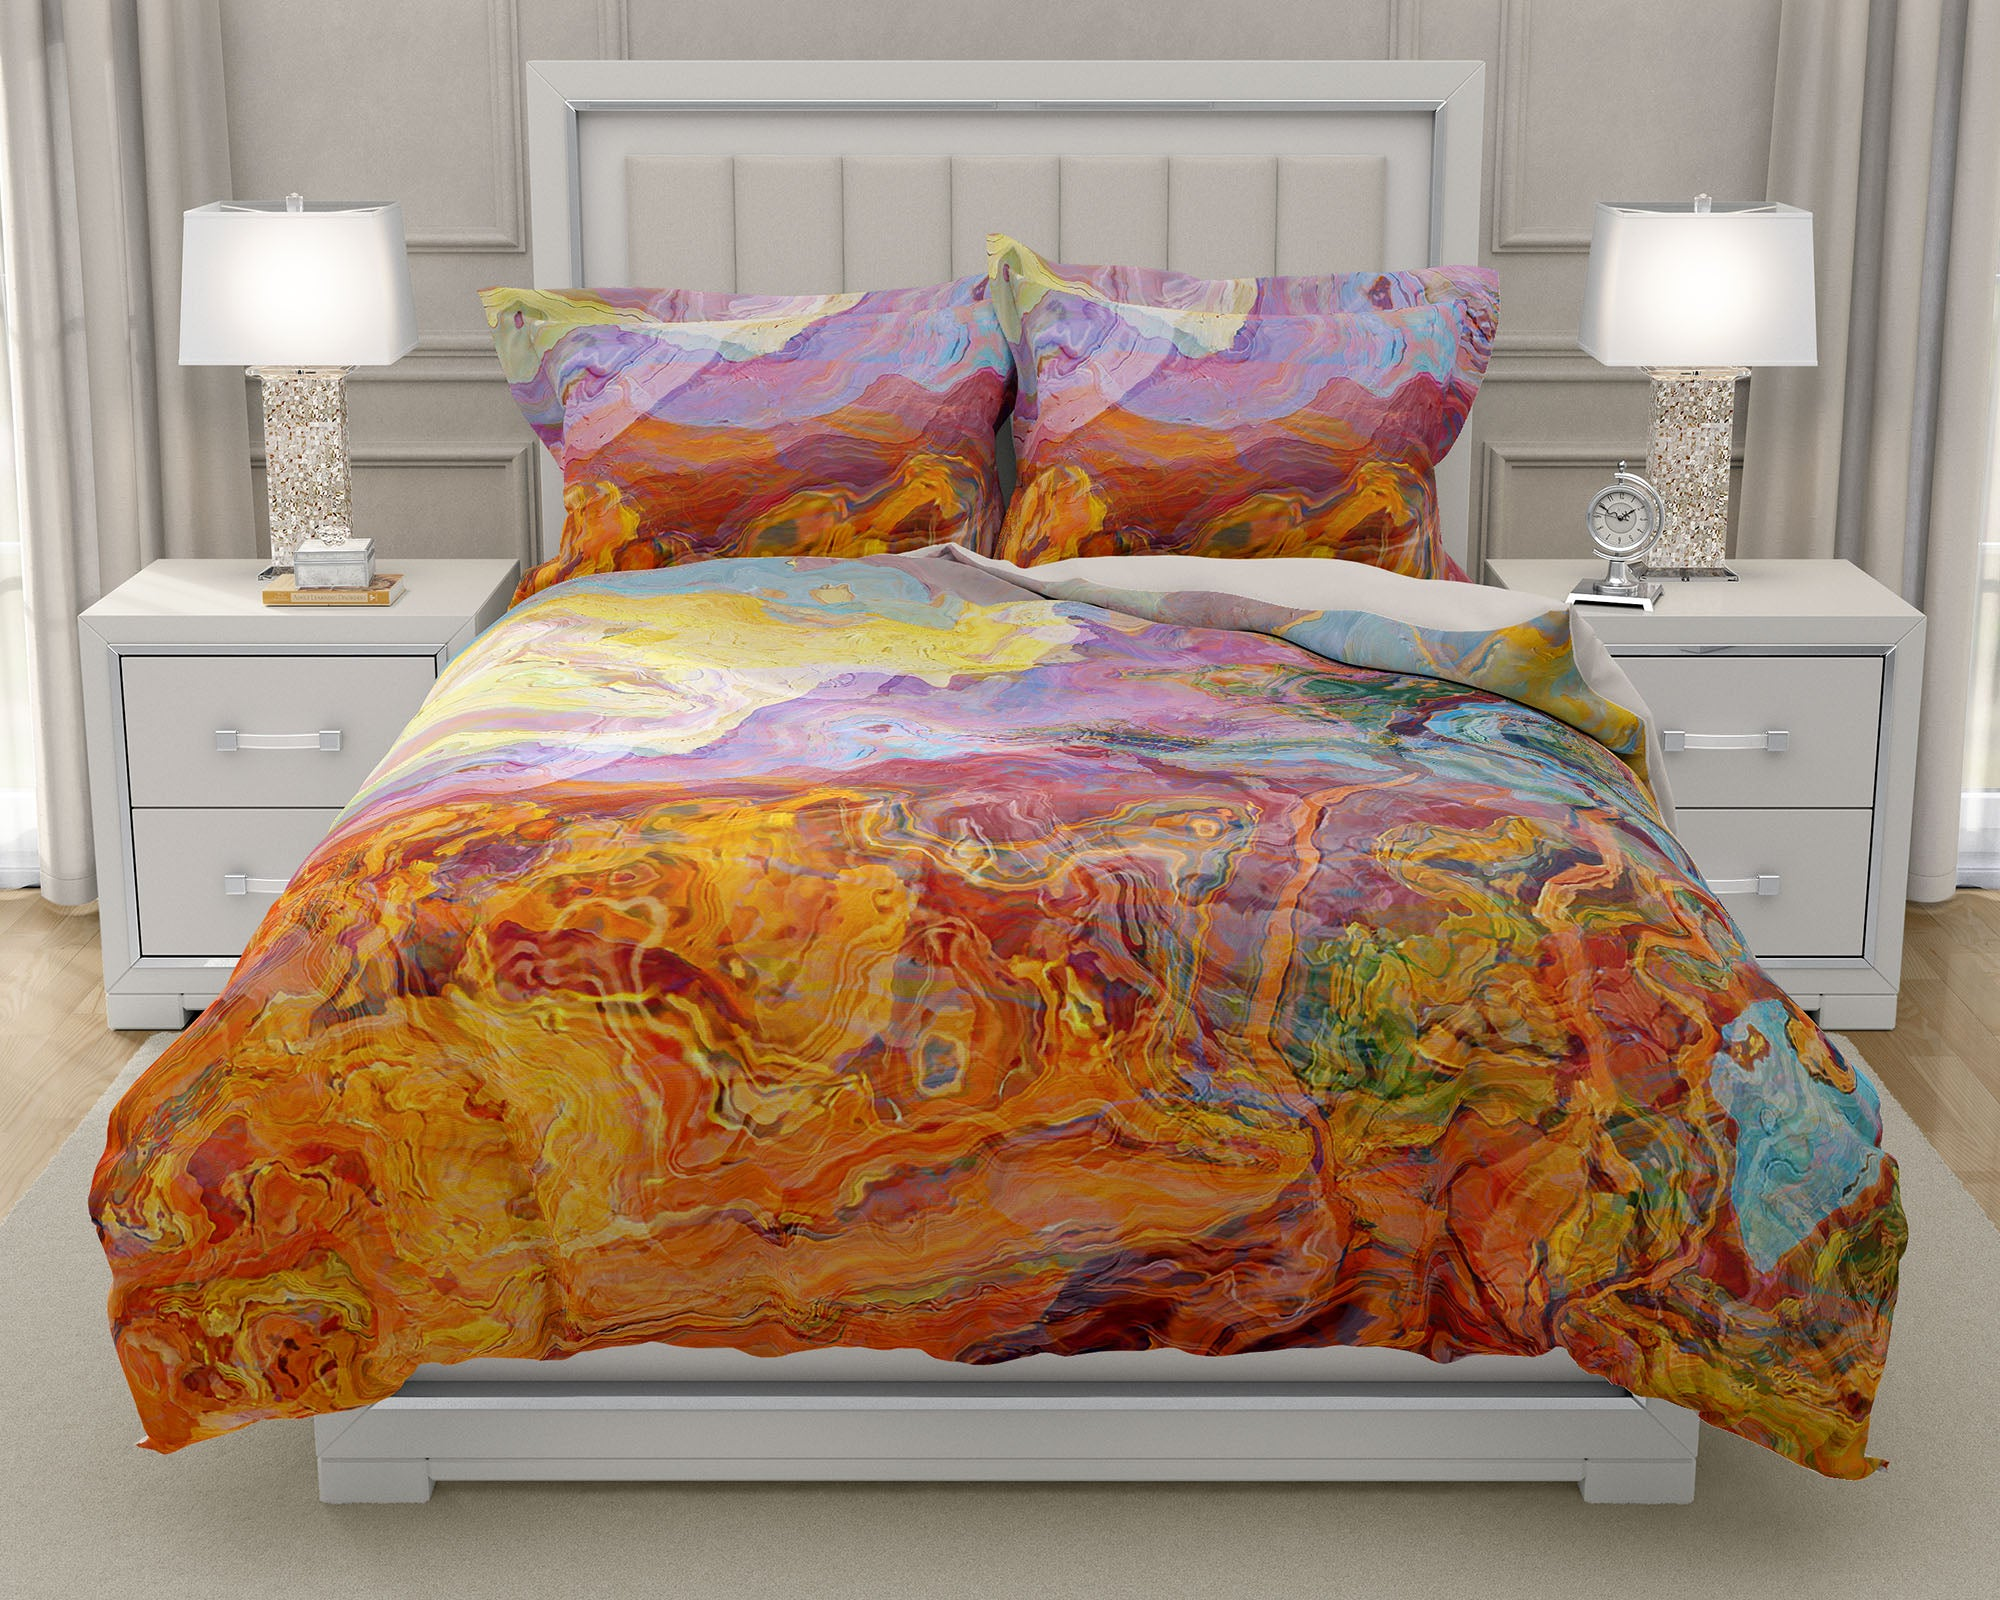 Duvet Cover With Abstract Art King Or Queen In Orange Yellow Blue Abstract Art Home